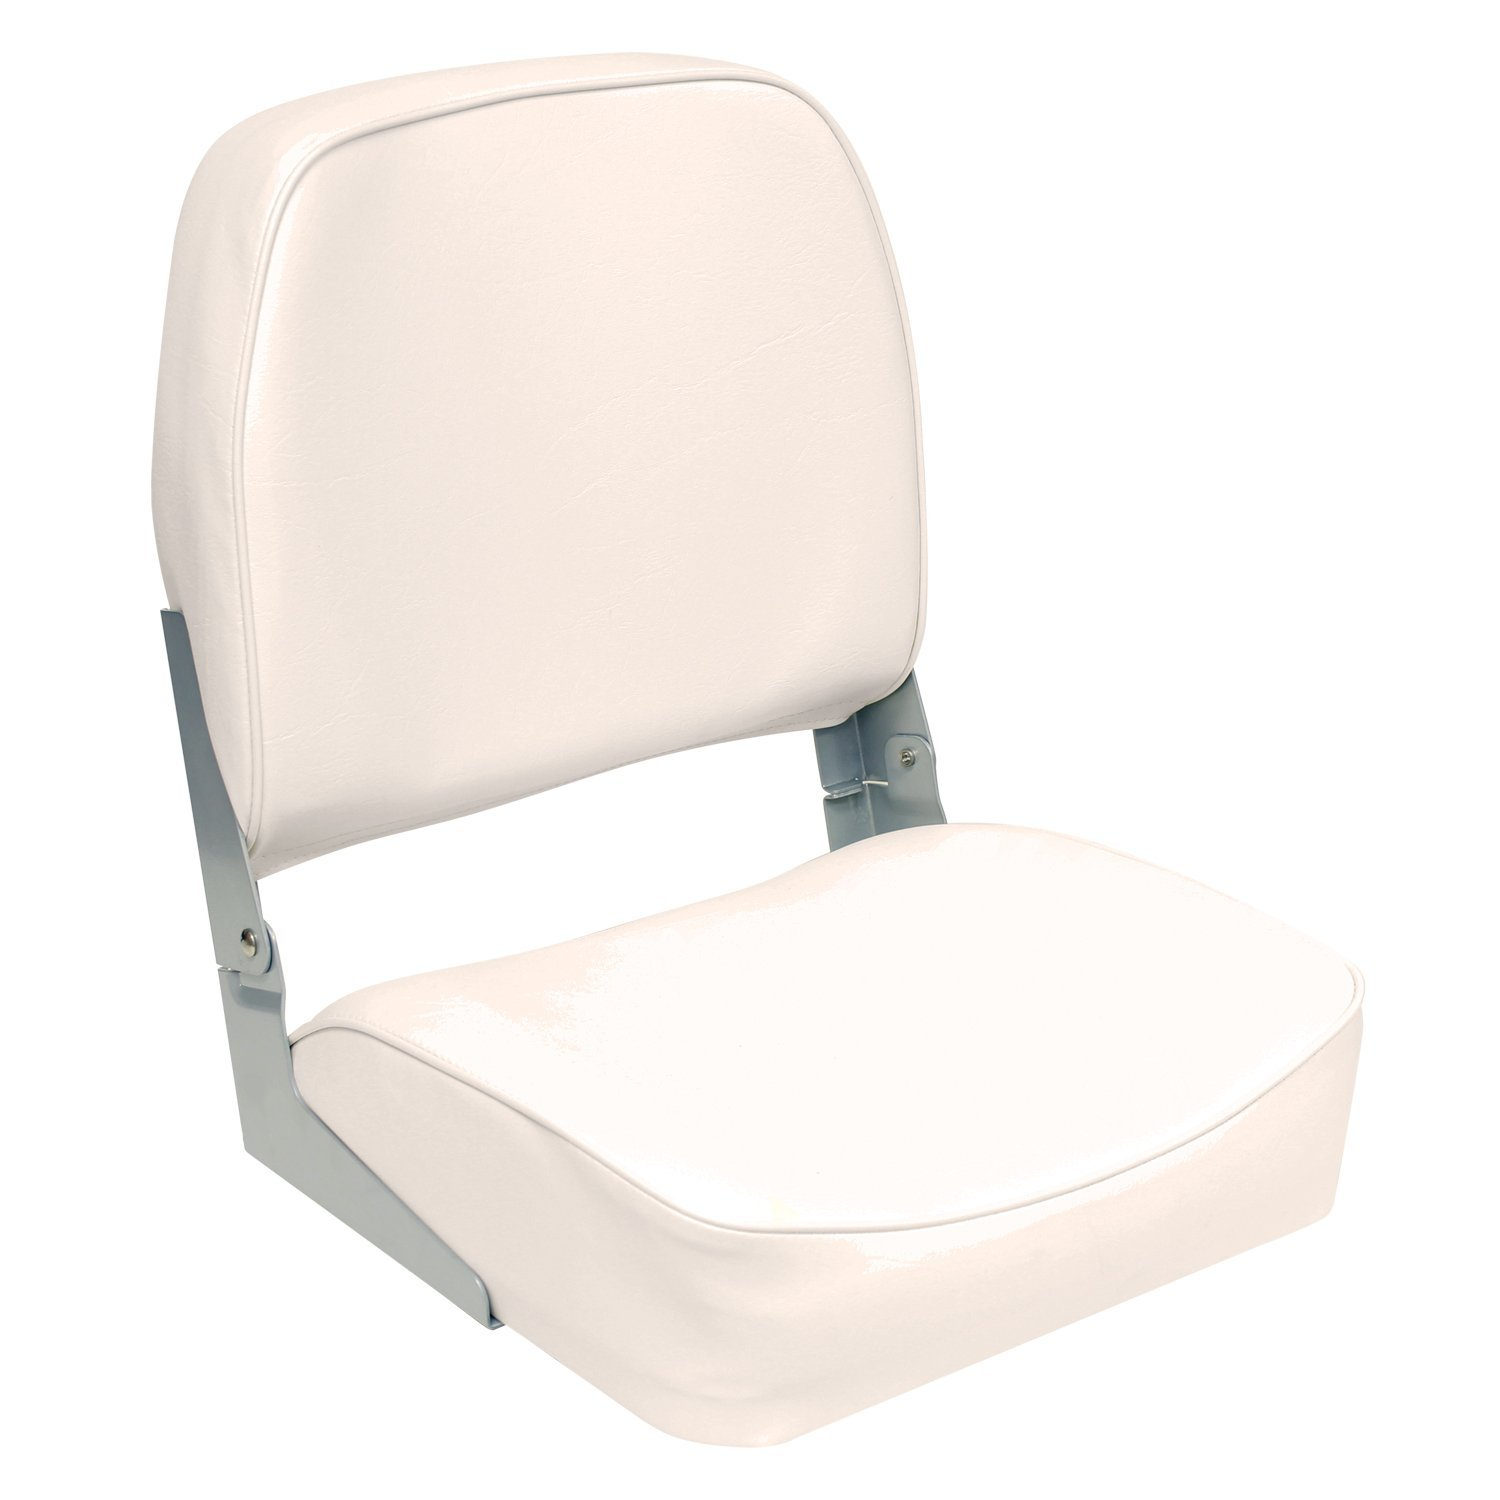 Grey Wise 3313-717 Super Value Folding Boat Seat